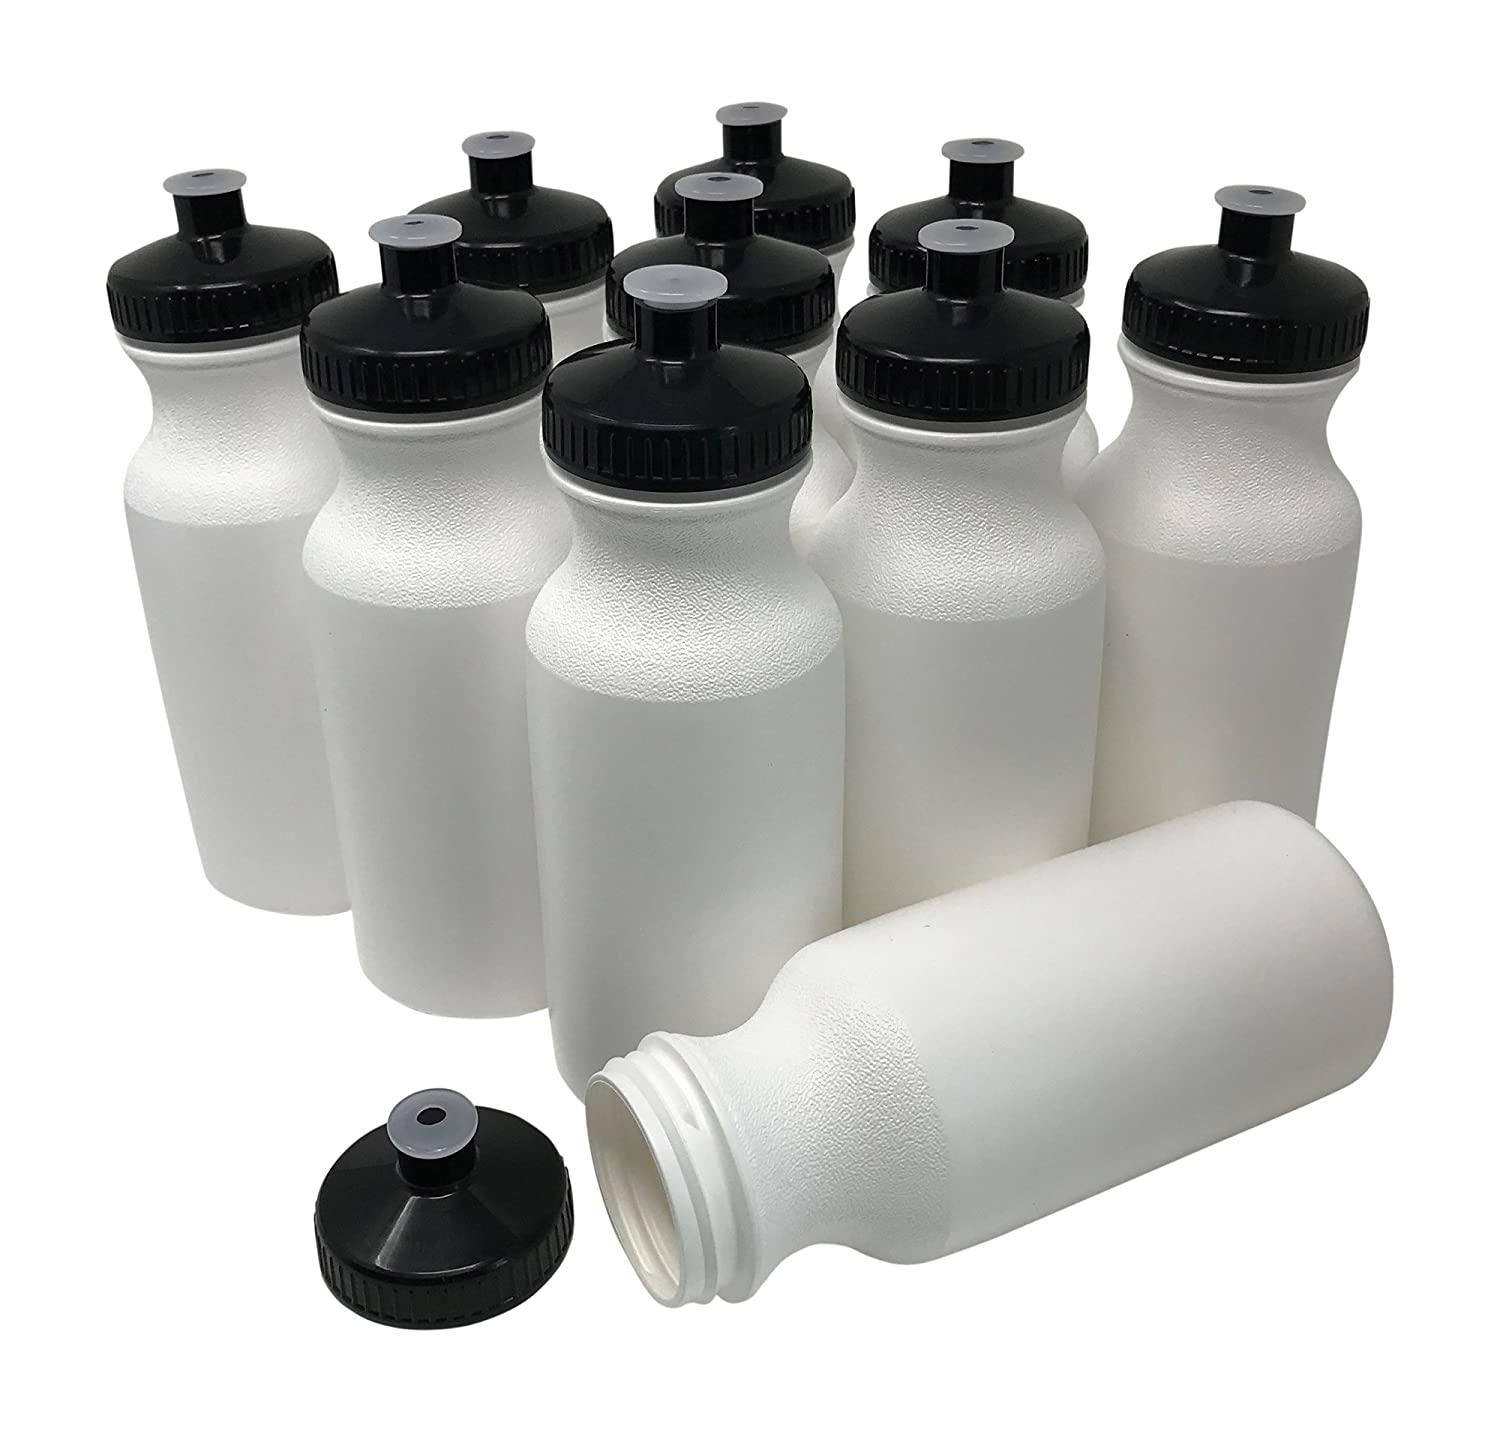 cc650ac06f Amazon.com : CSBD Blank 20 oz Sports and Fitness Squeeze Water Bottles, BPA  Free, HDPE Plastic, Bulk (White Bottle - Black Lid, 10 Pack) : Sports &  Outdoors